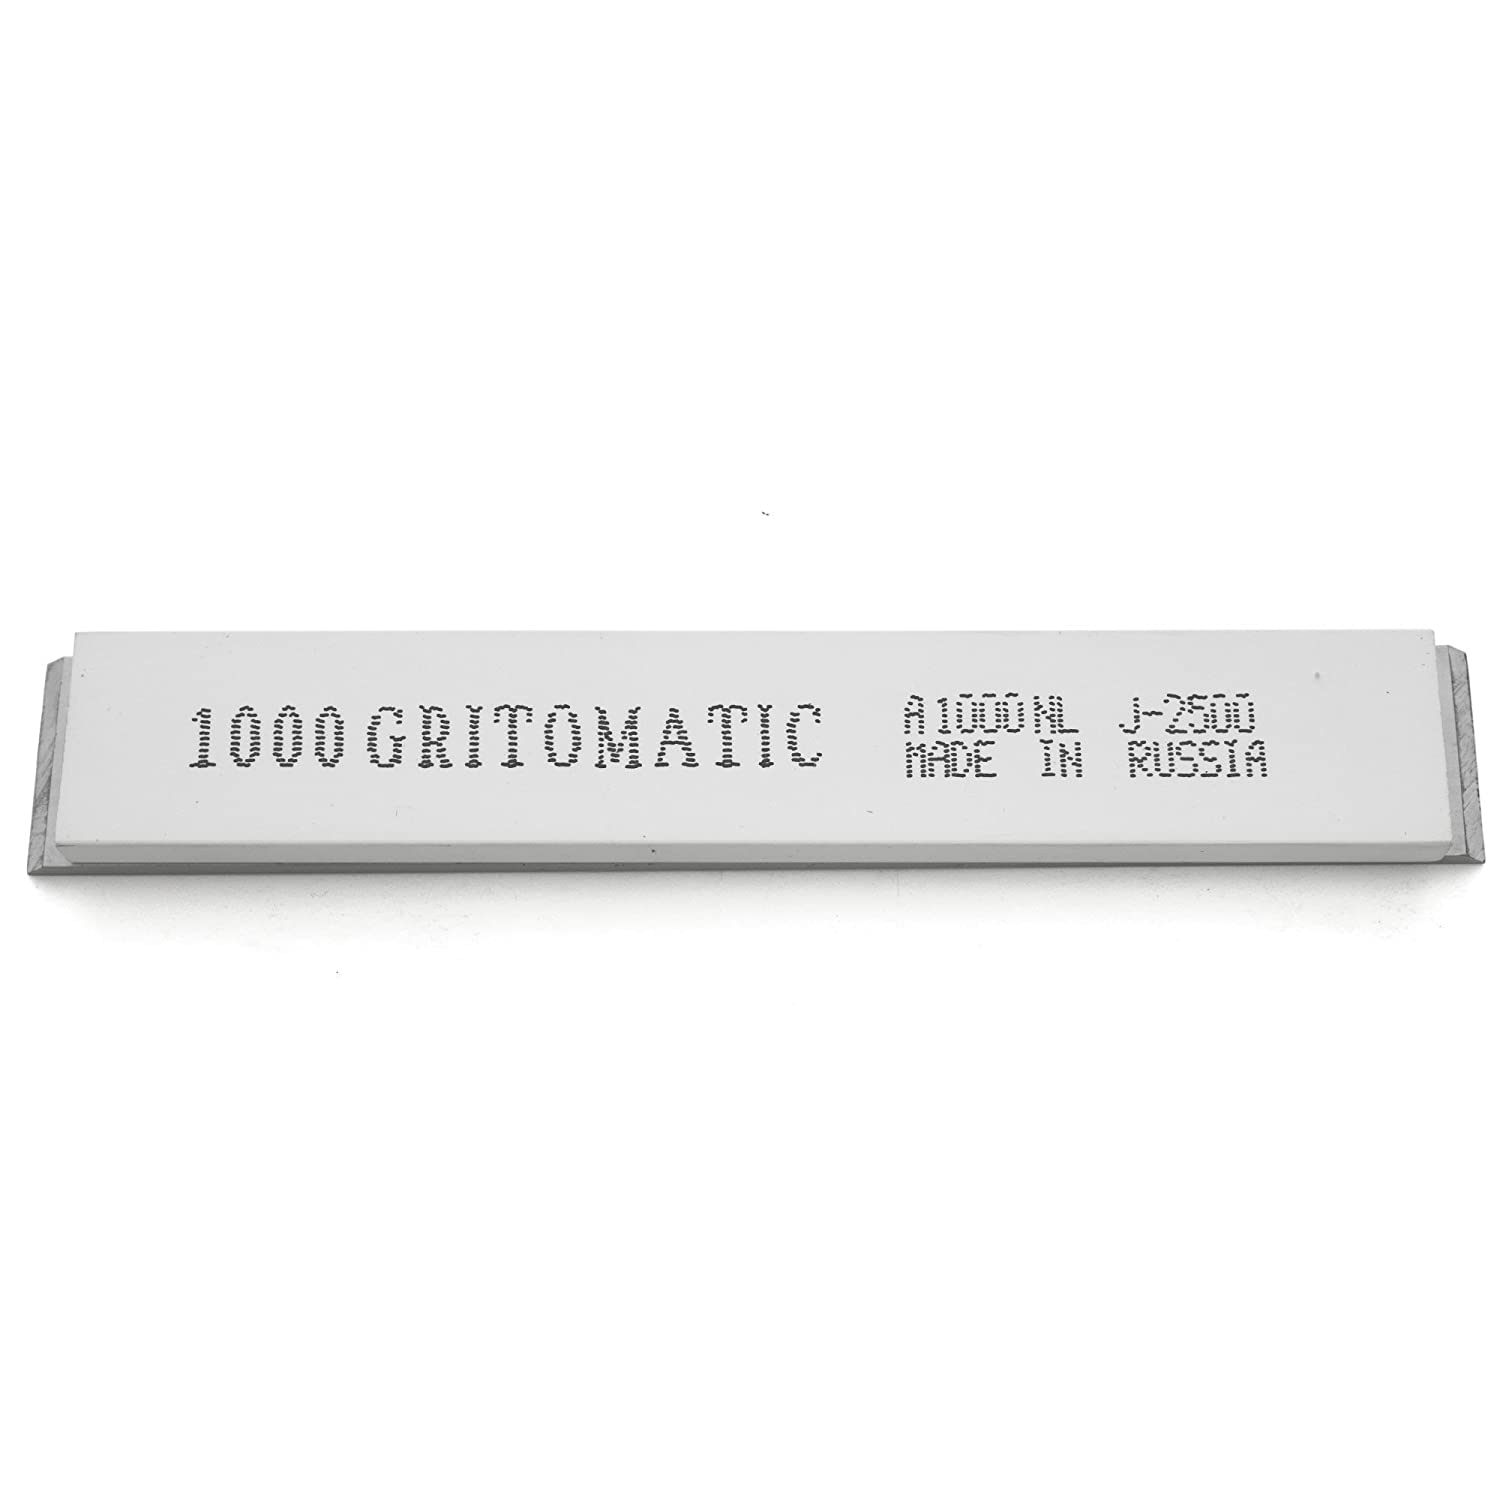 5 stones Gritomatic Aluminum Oxide 6 x 1 x 0.25 Sharpening Stone Set with Aluminum Mounting for Edge Pro